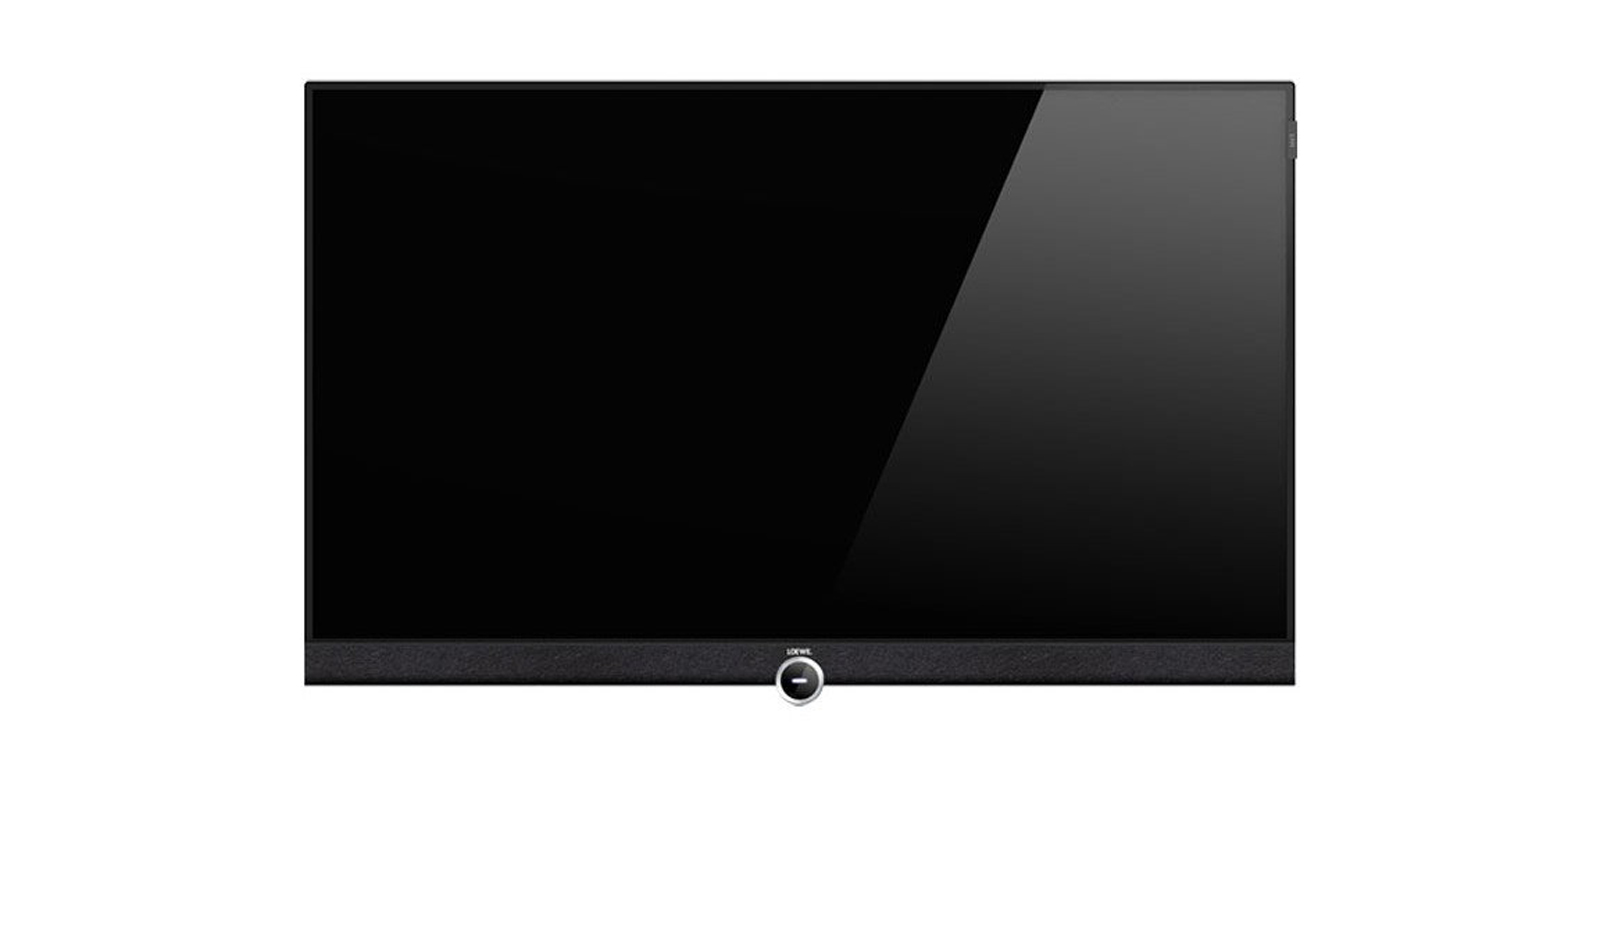 bild 5 loewe led tv uhd 4k soundbar audio venue